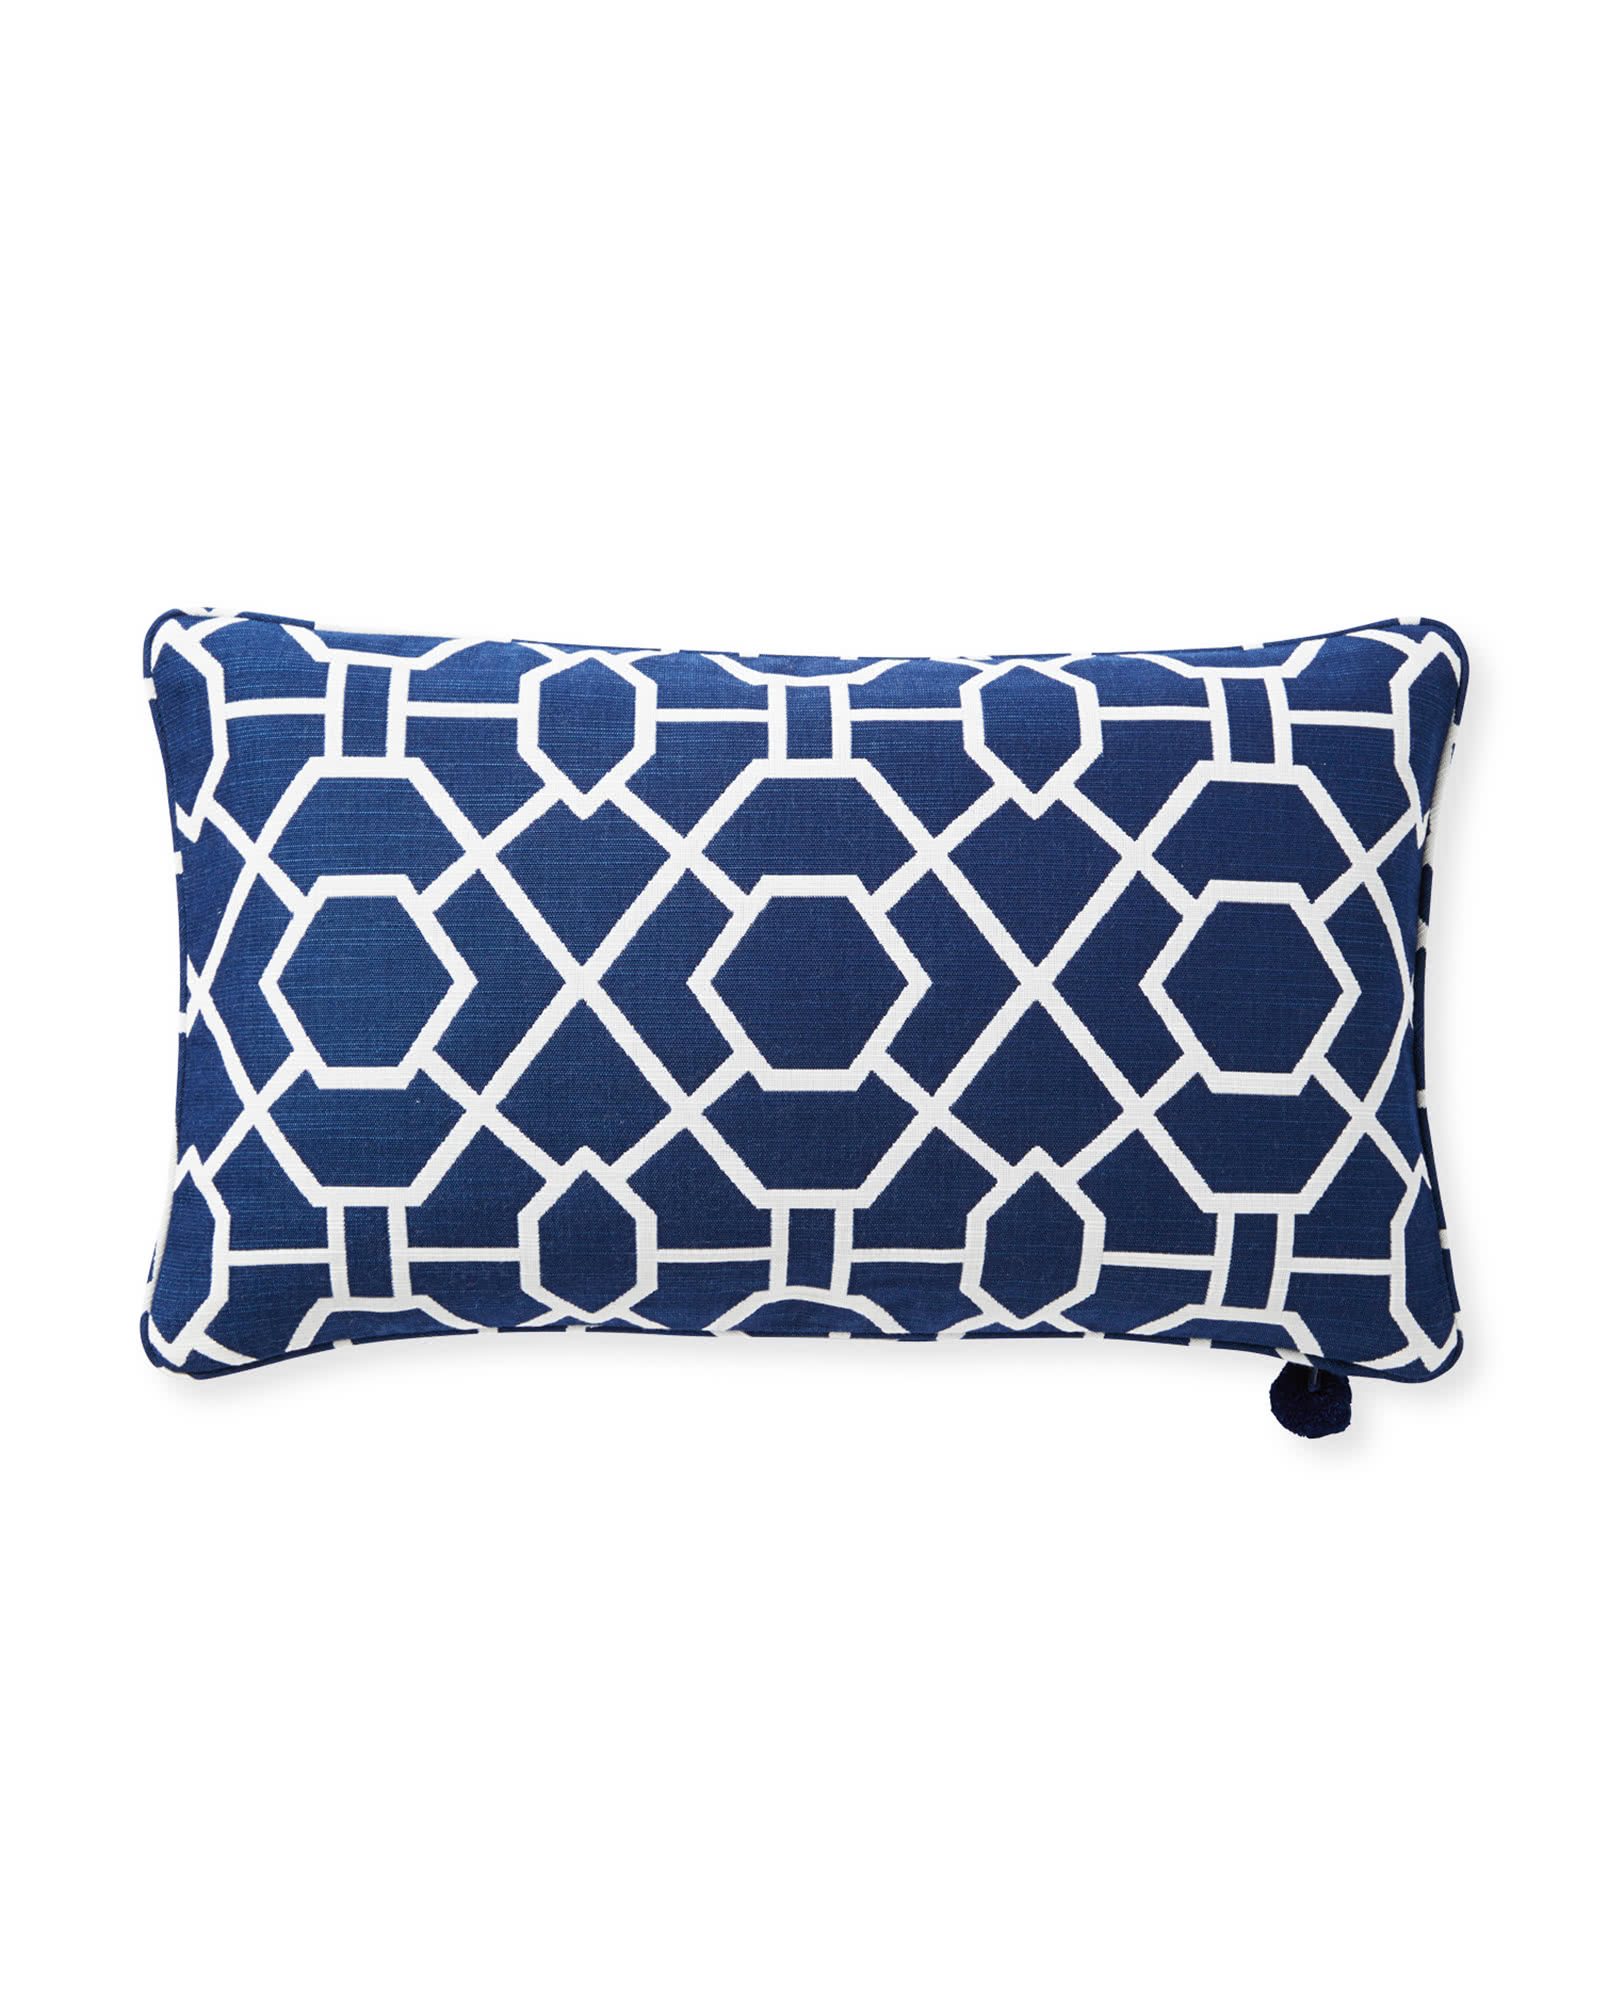 Perennials® Trellis Pillow Cover, Navy